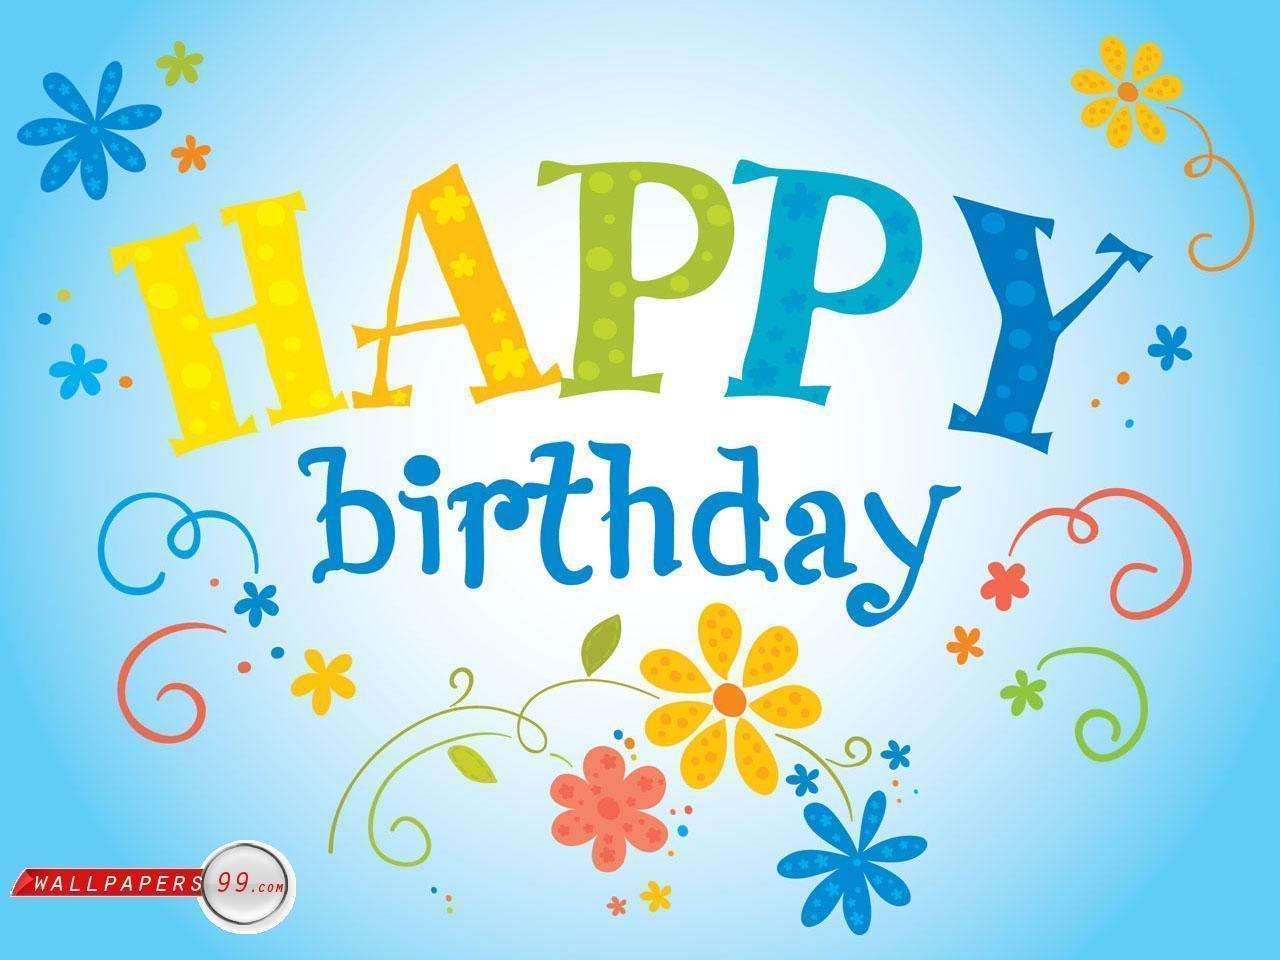 HD Wallpaper Happy Birthday Free Hd Wallpaper Happy Birthday Dear ...